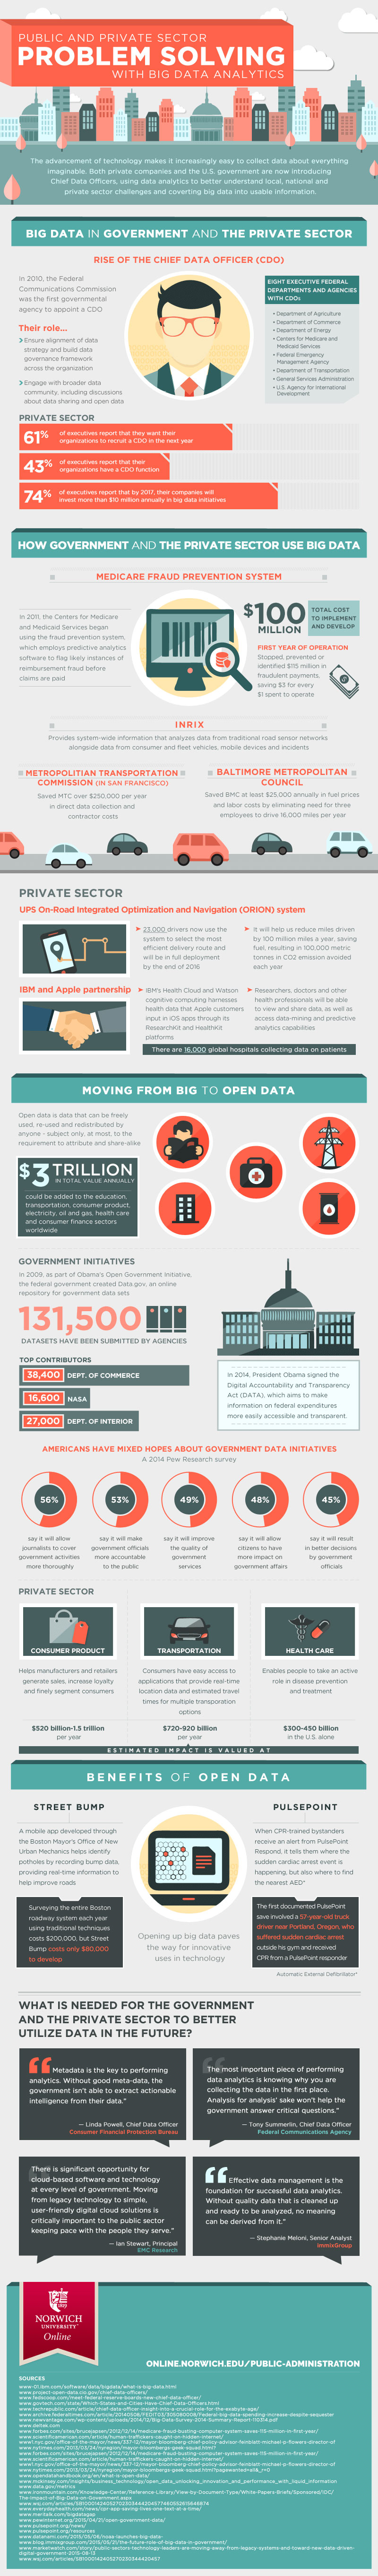 public and private sector big data analytics infographic